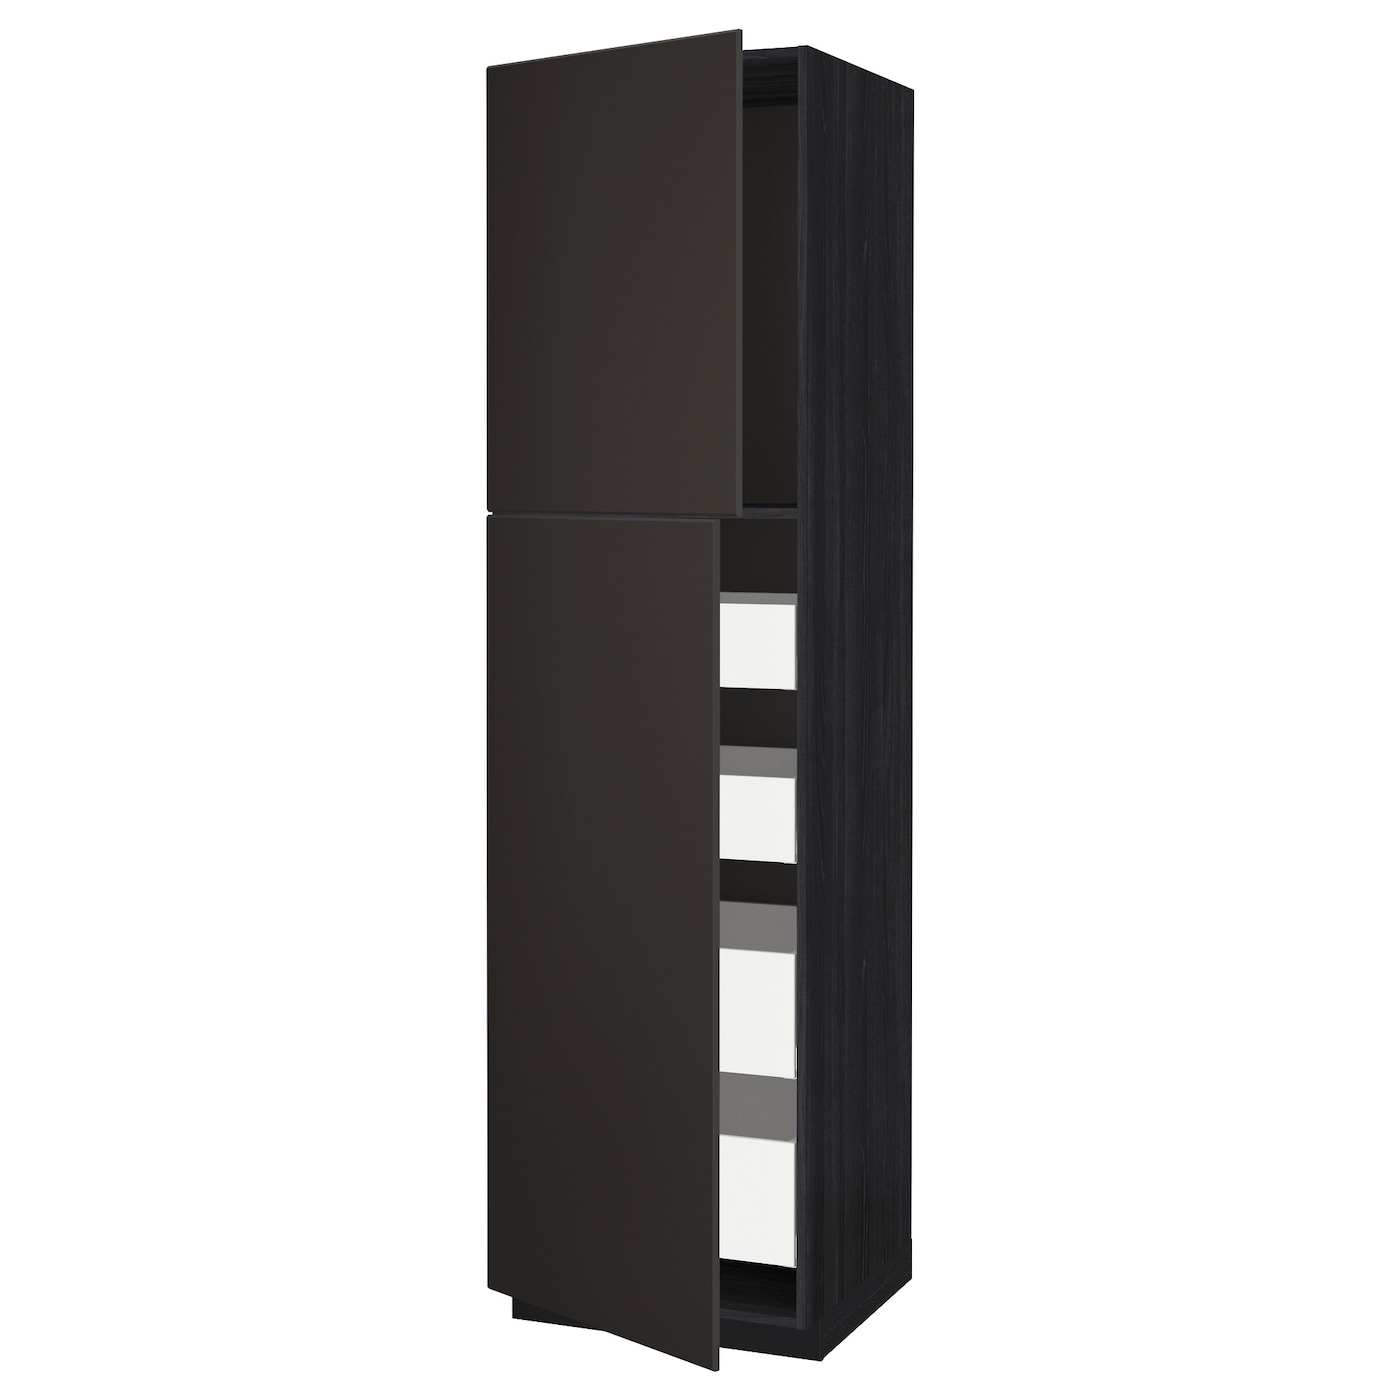 metod maximera armoire 2 portes 4 tiroirs noir kungsbacka. Black Bedroom Furniture Sets. Home Design Ideas